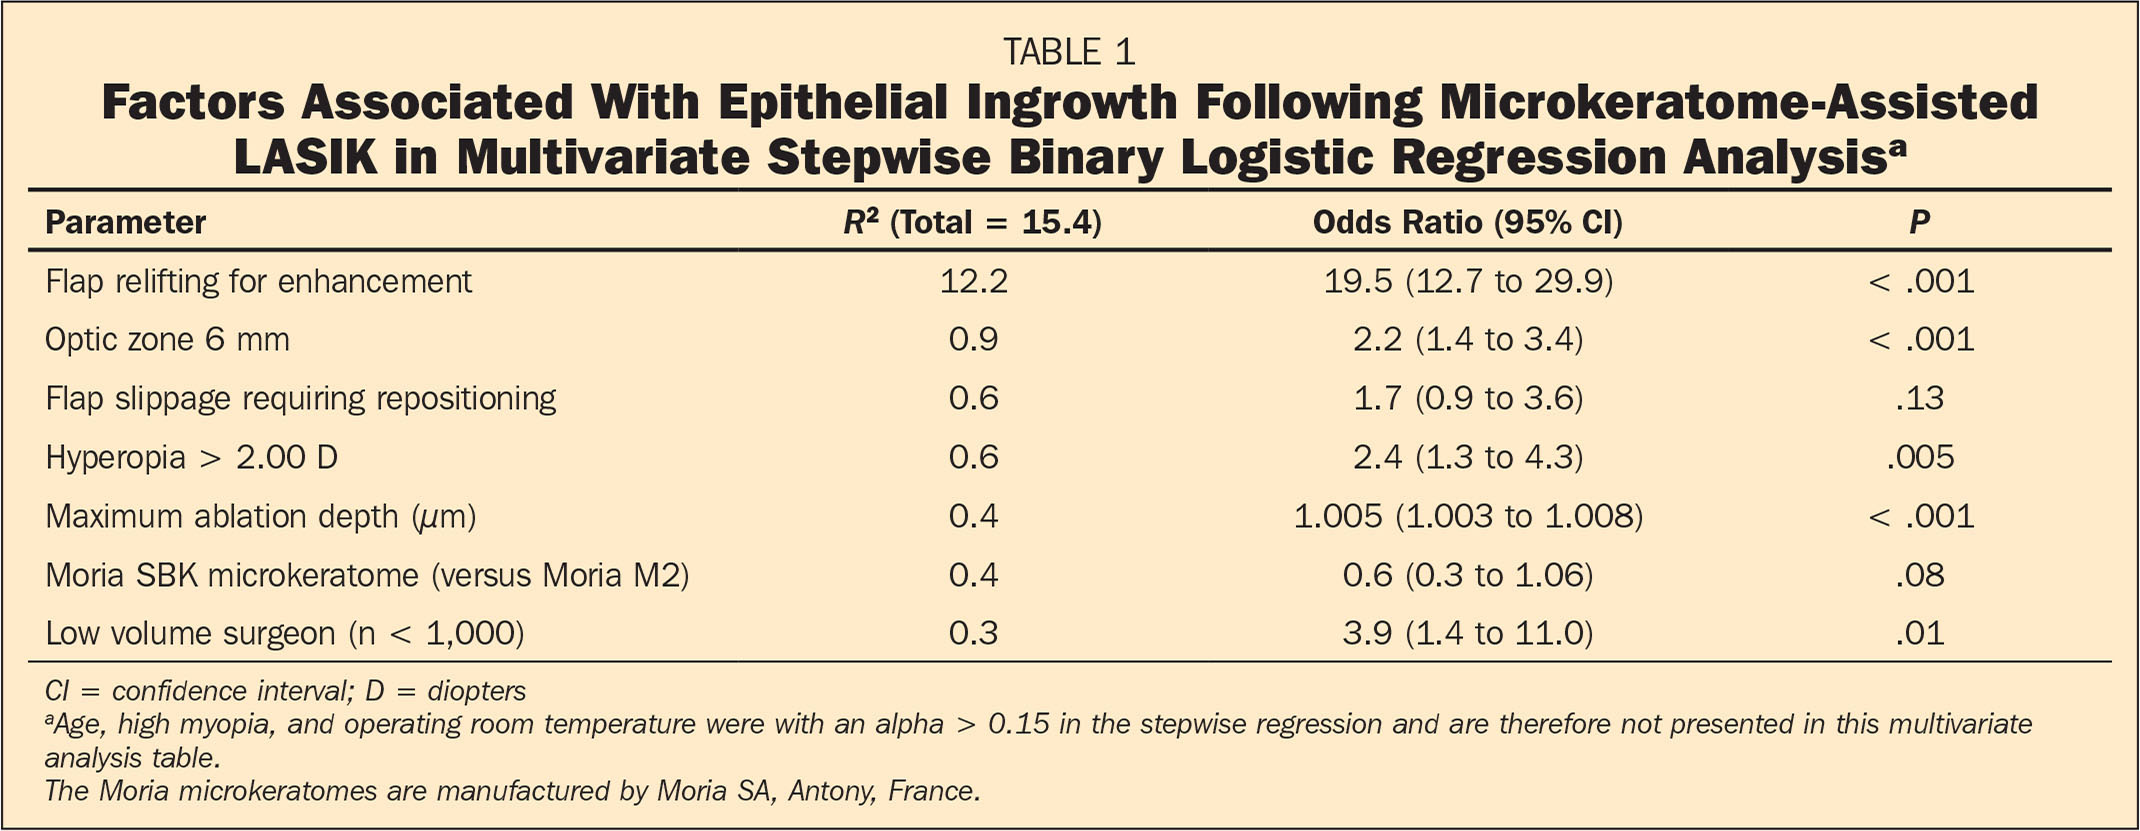 Factors Associated With Epithelial Ingrowth Following Microkeratome-Assisted LASIK in Multivariate Stepwise Binary Logistic Regression Analysisa